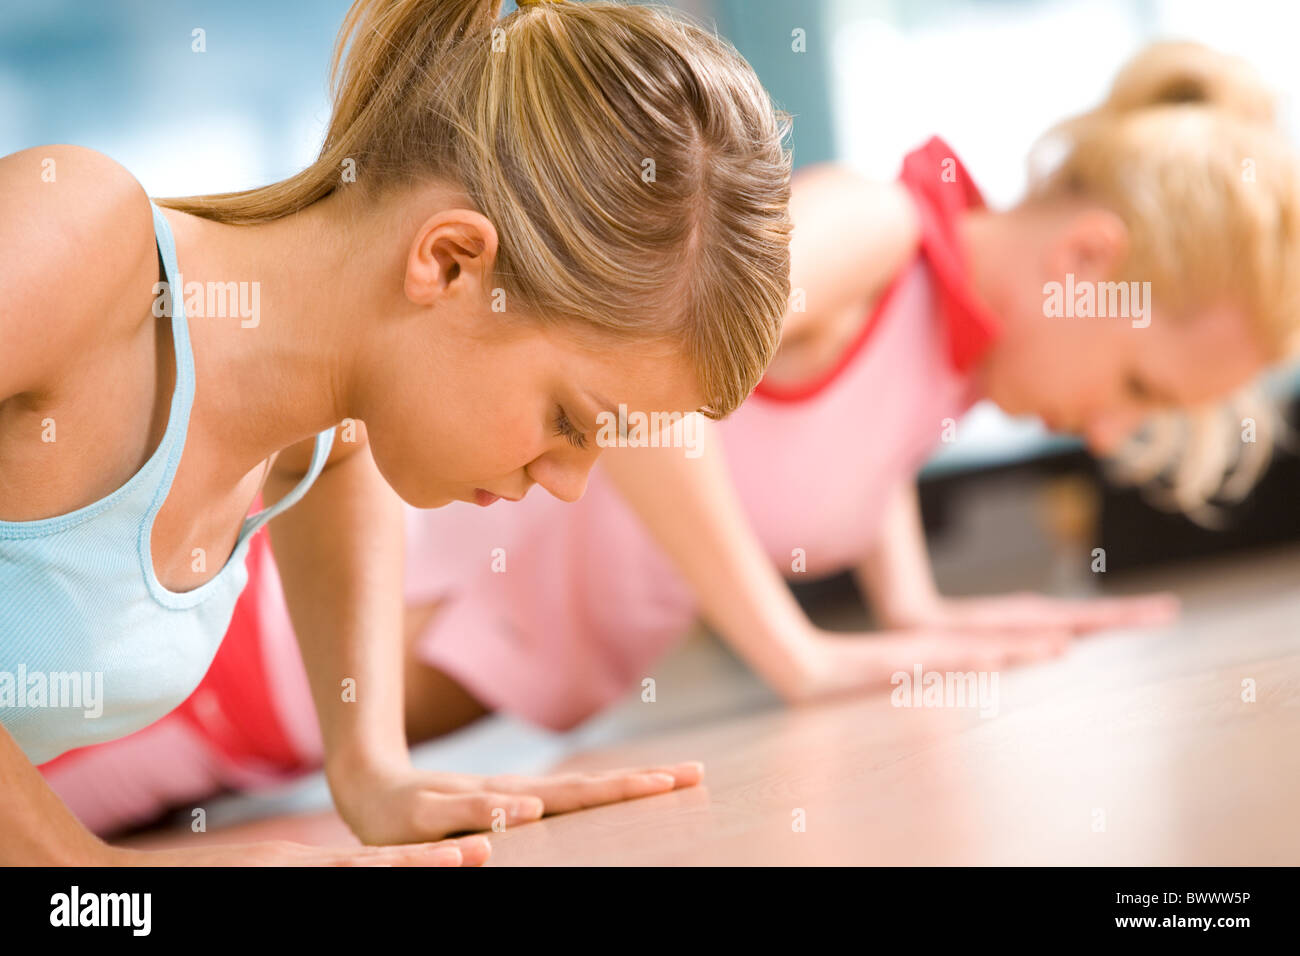 Photo of young girl doing difficult exercise for arm biceps on the floor - Stock Image